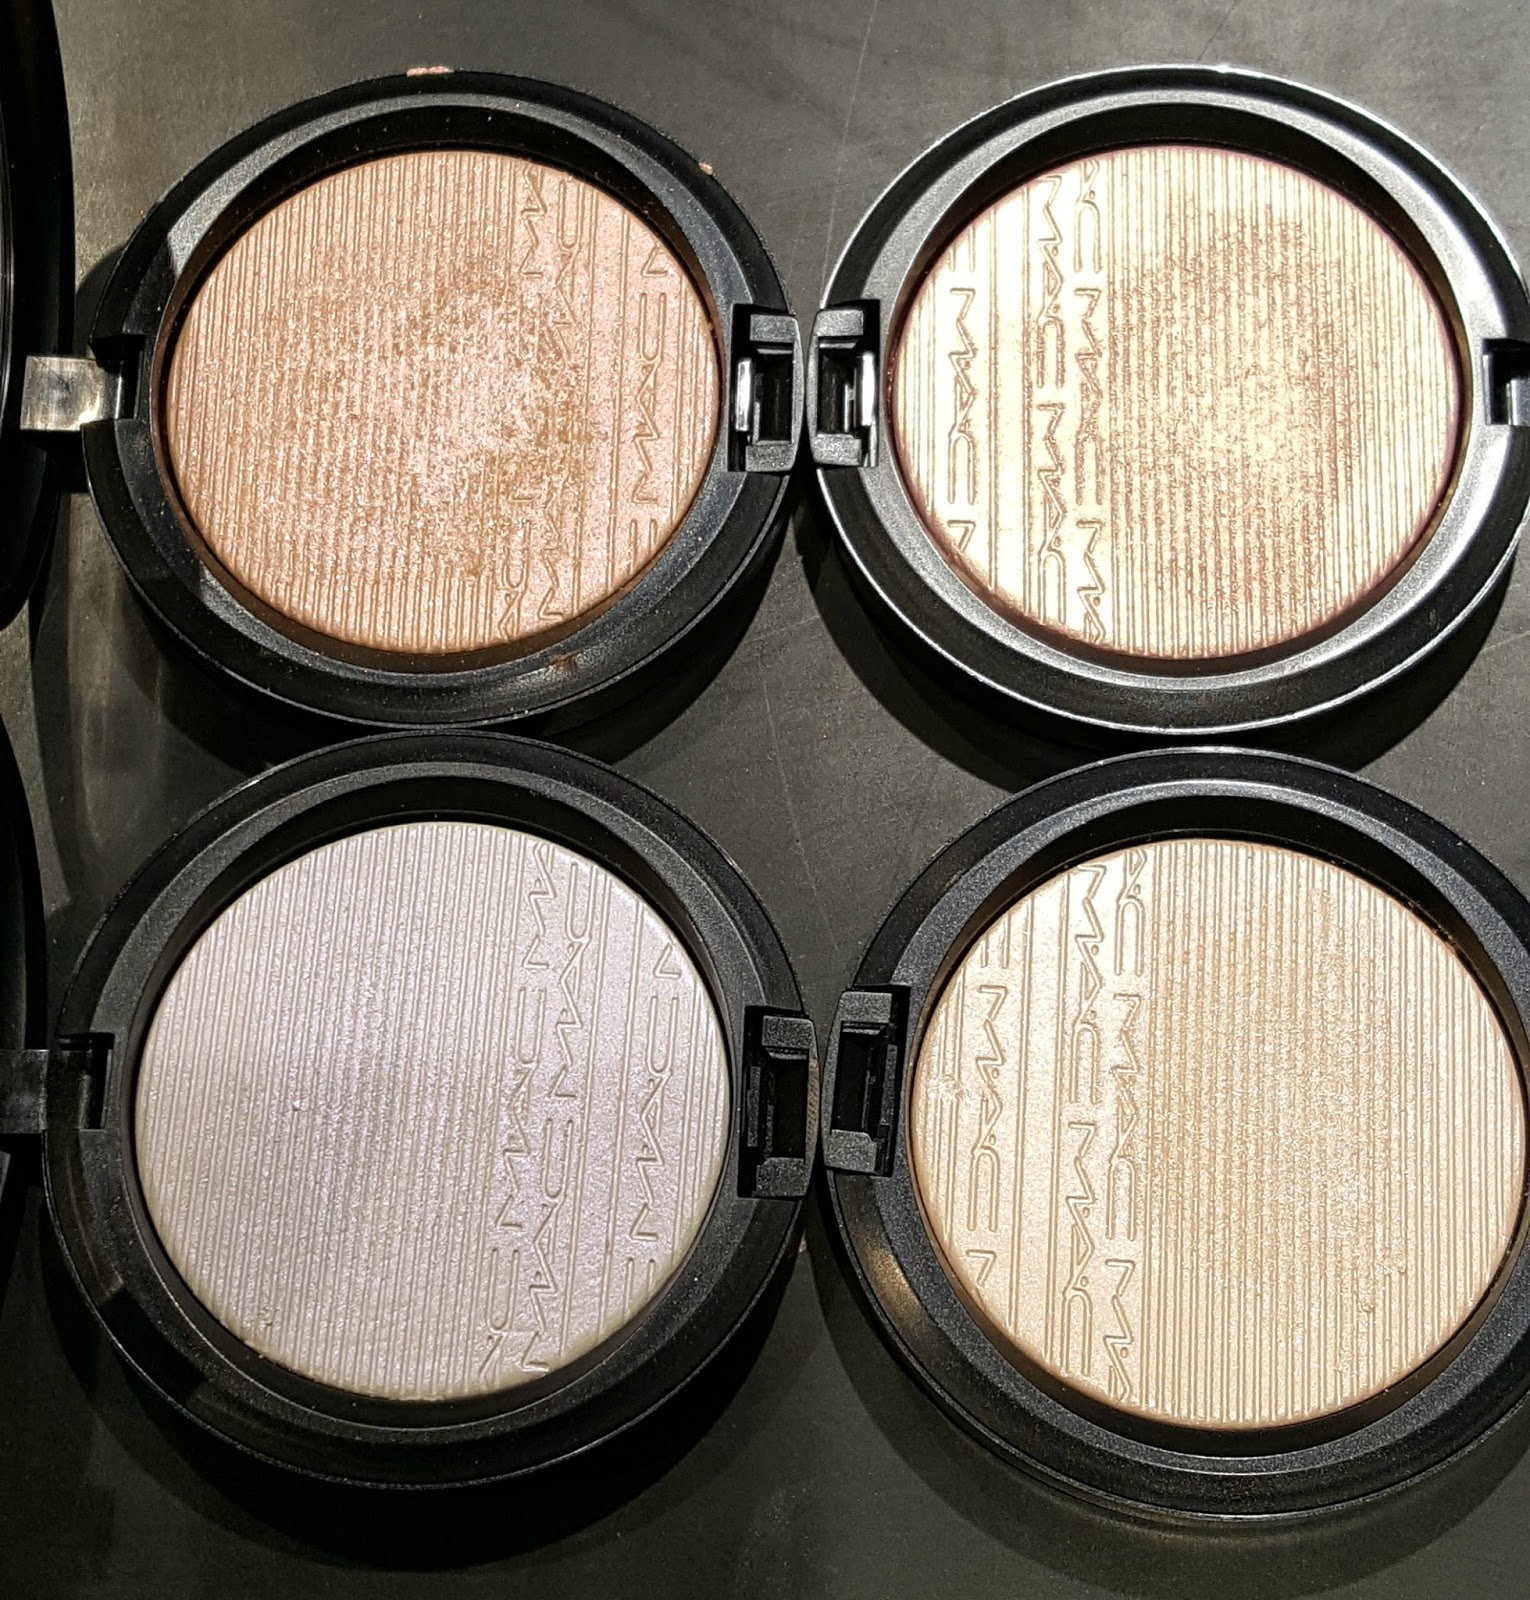 New Mac Extra Dimension Skin Finishes Show Gold